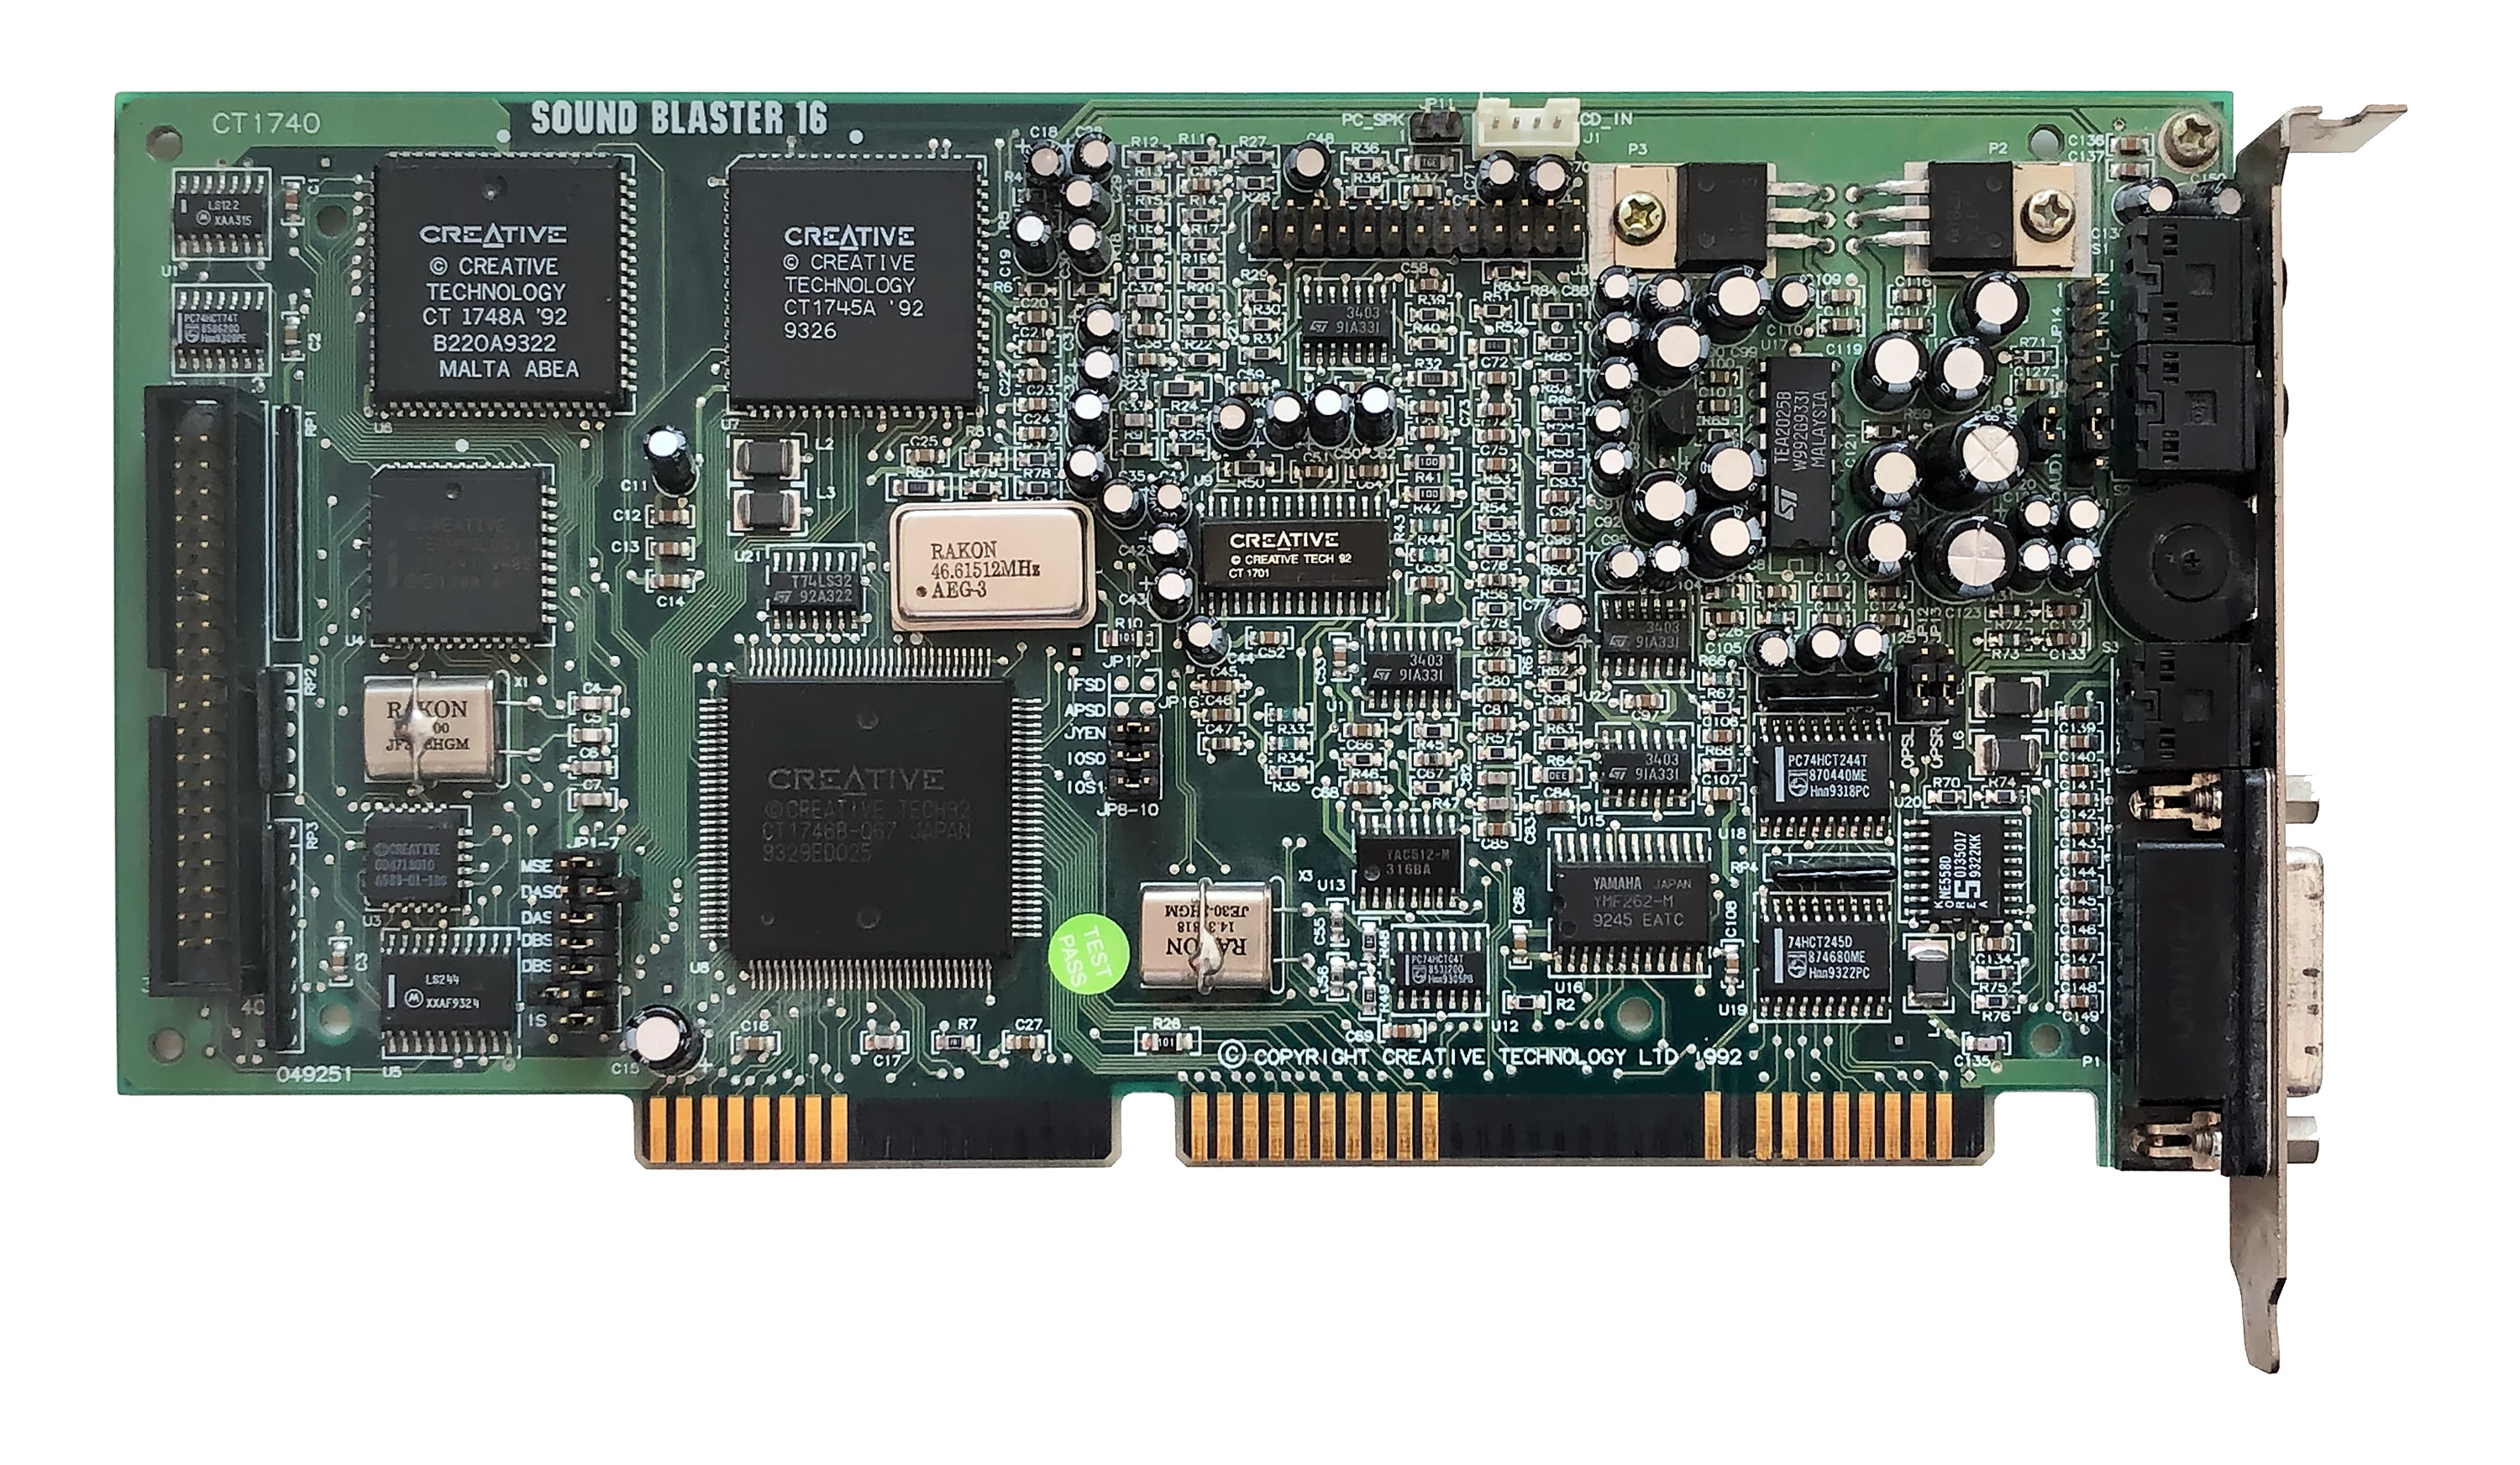 Creative-Sound-Blaster-16-ASP-16-bit-ISA-card-CT-1740.jpg